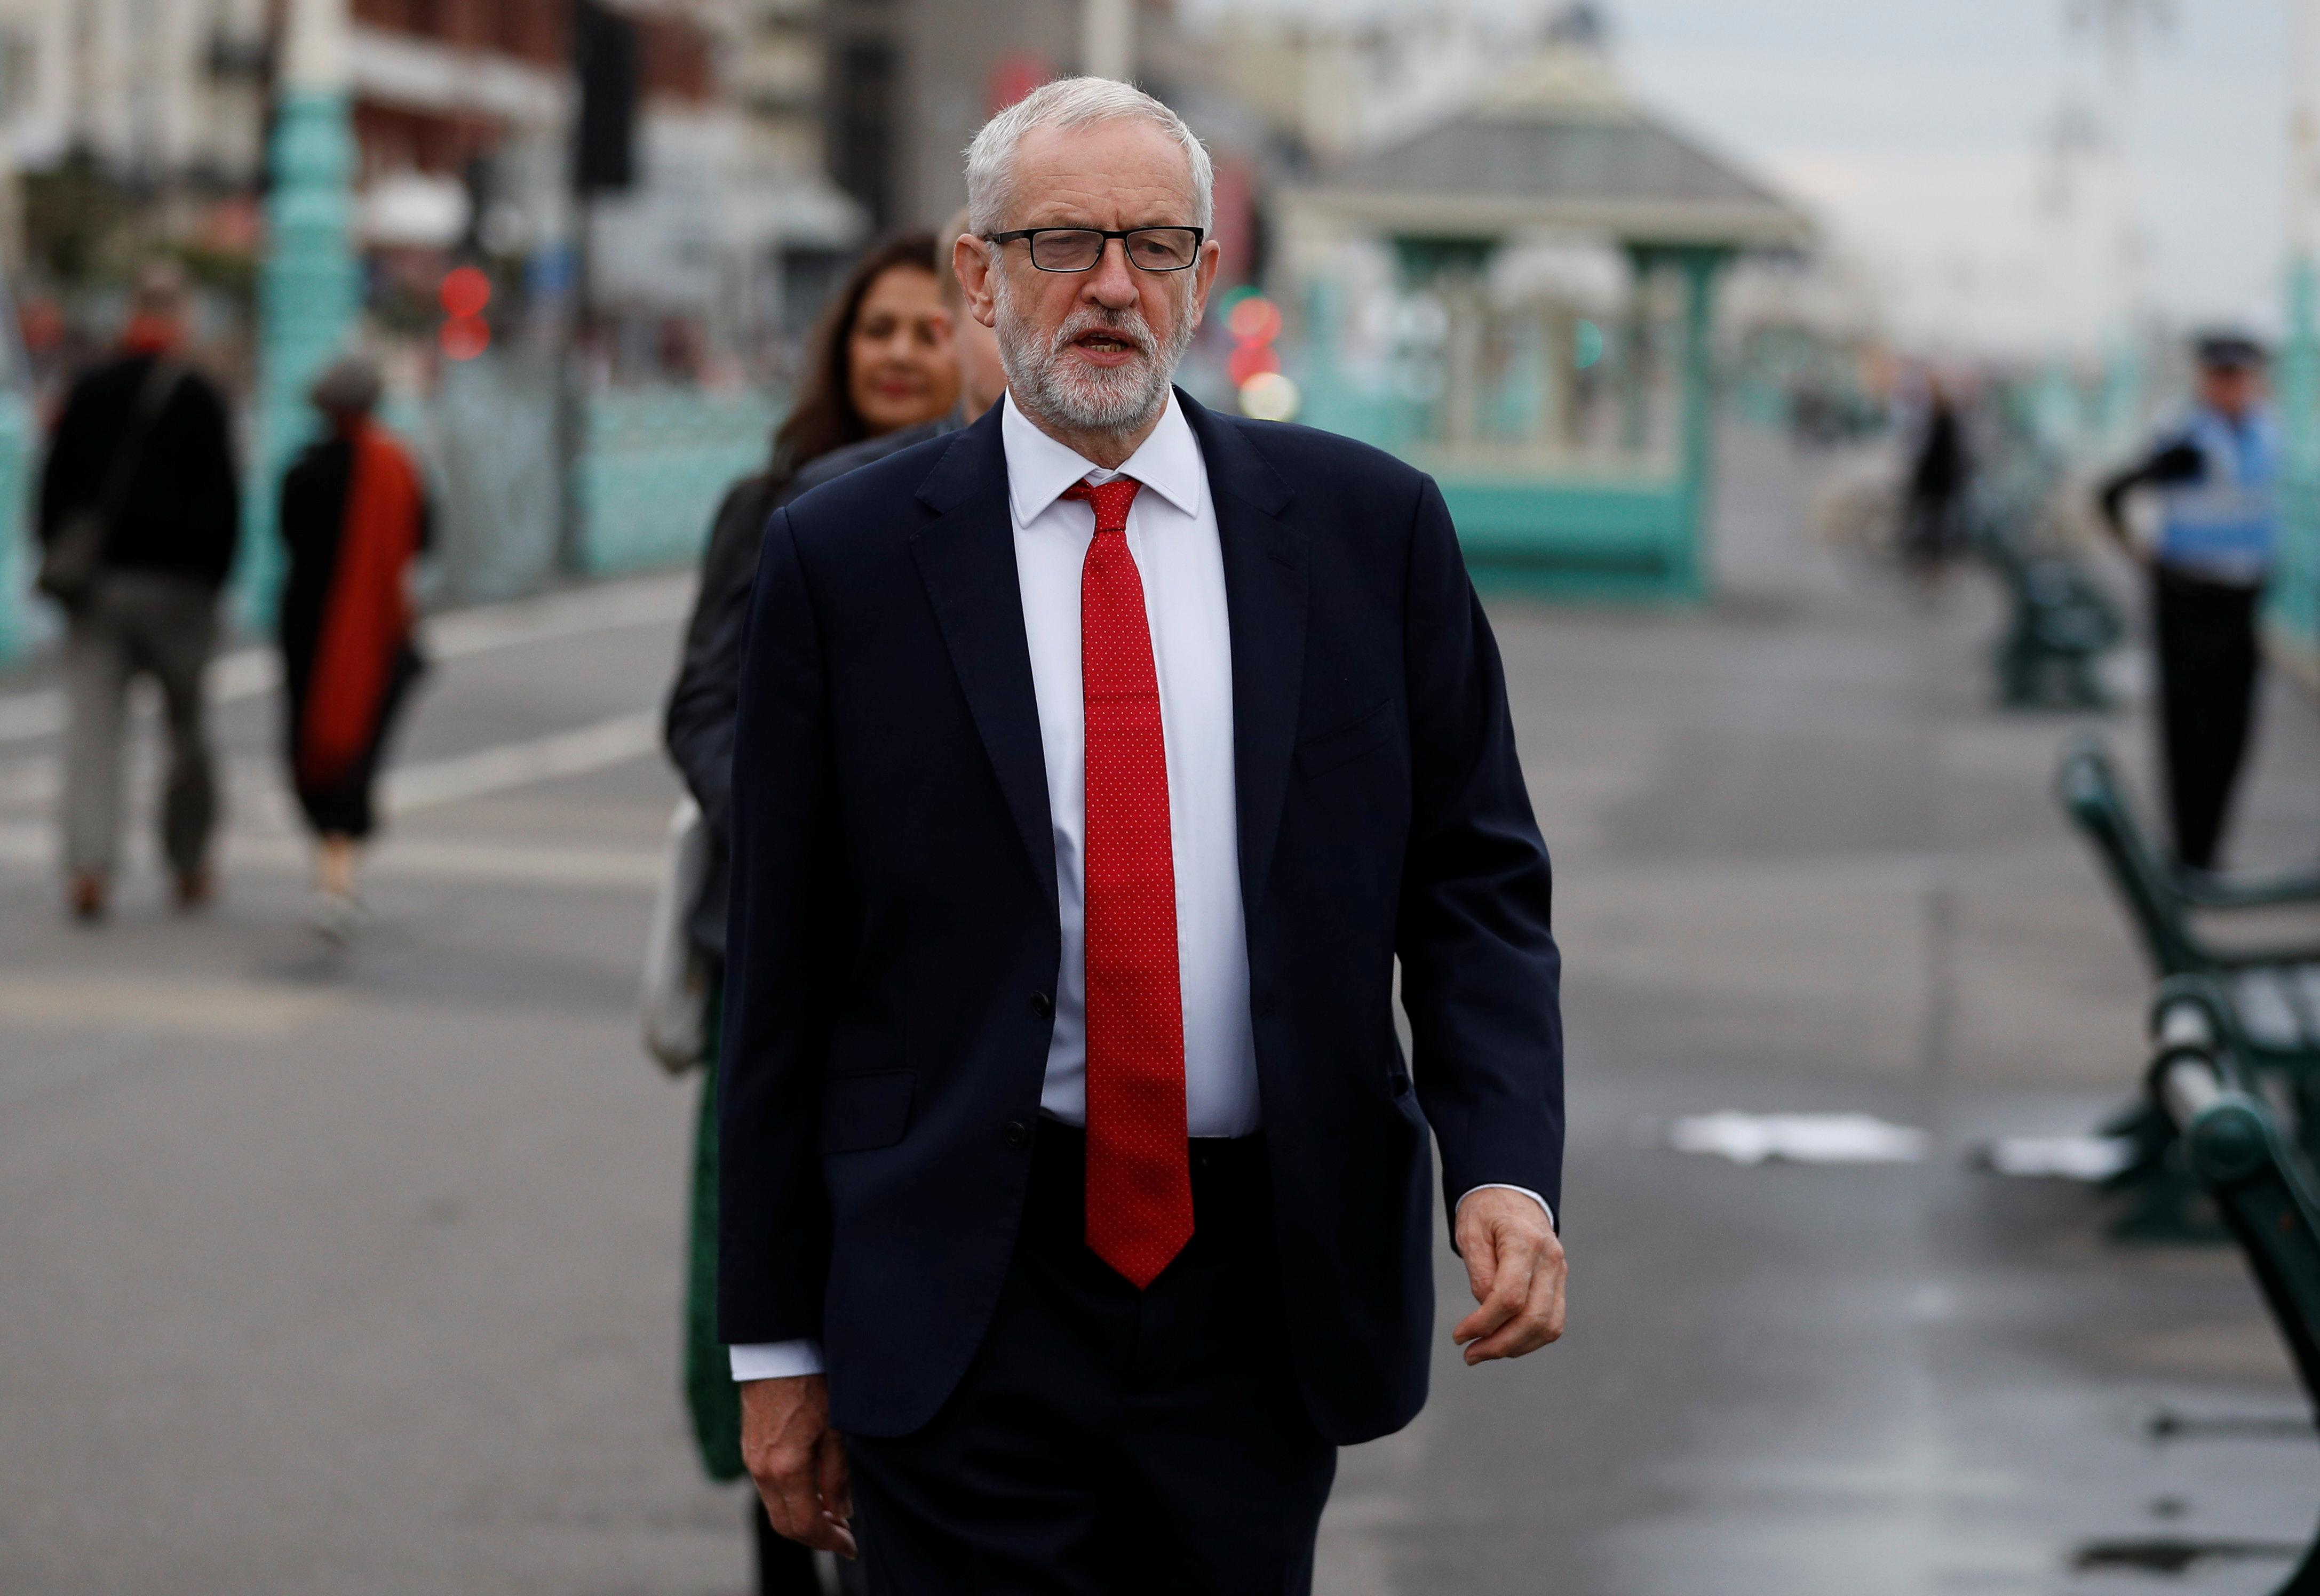 Labour to vote on Brexit stance